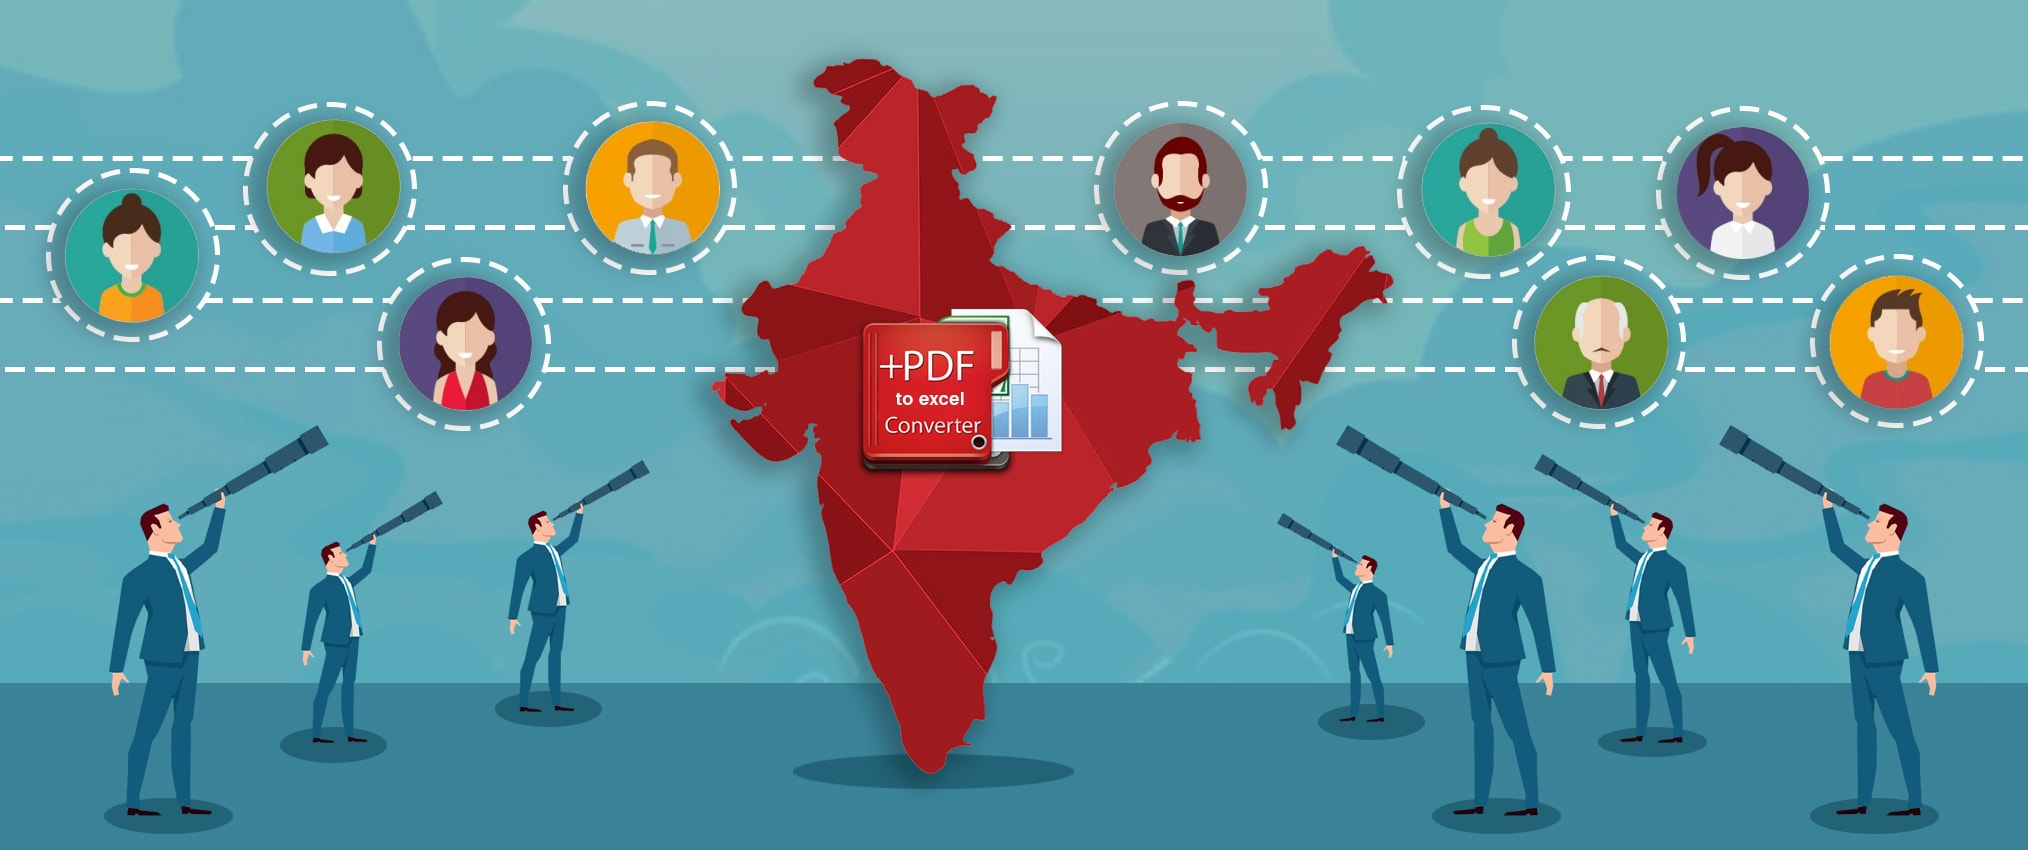 india-is-a-hot-destination-for-pdf-to-excel-conversion